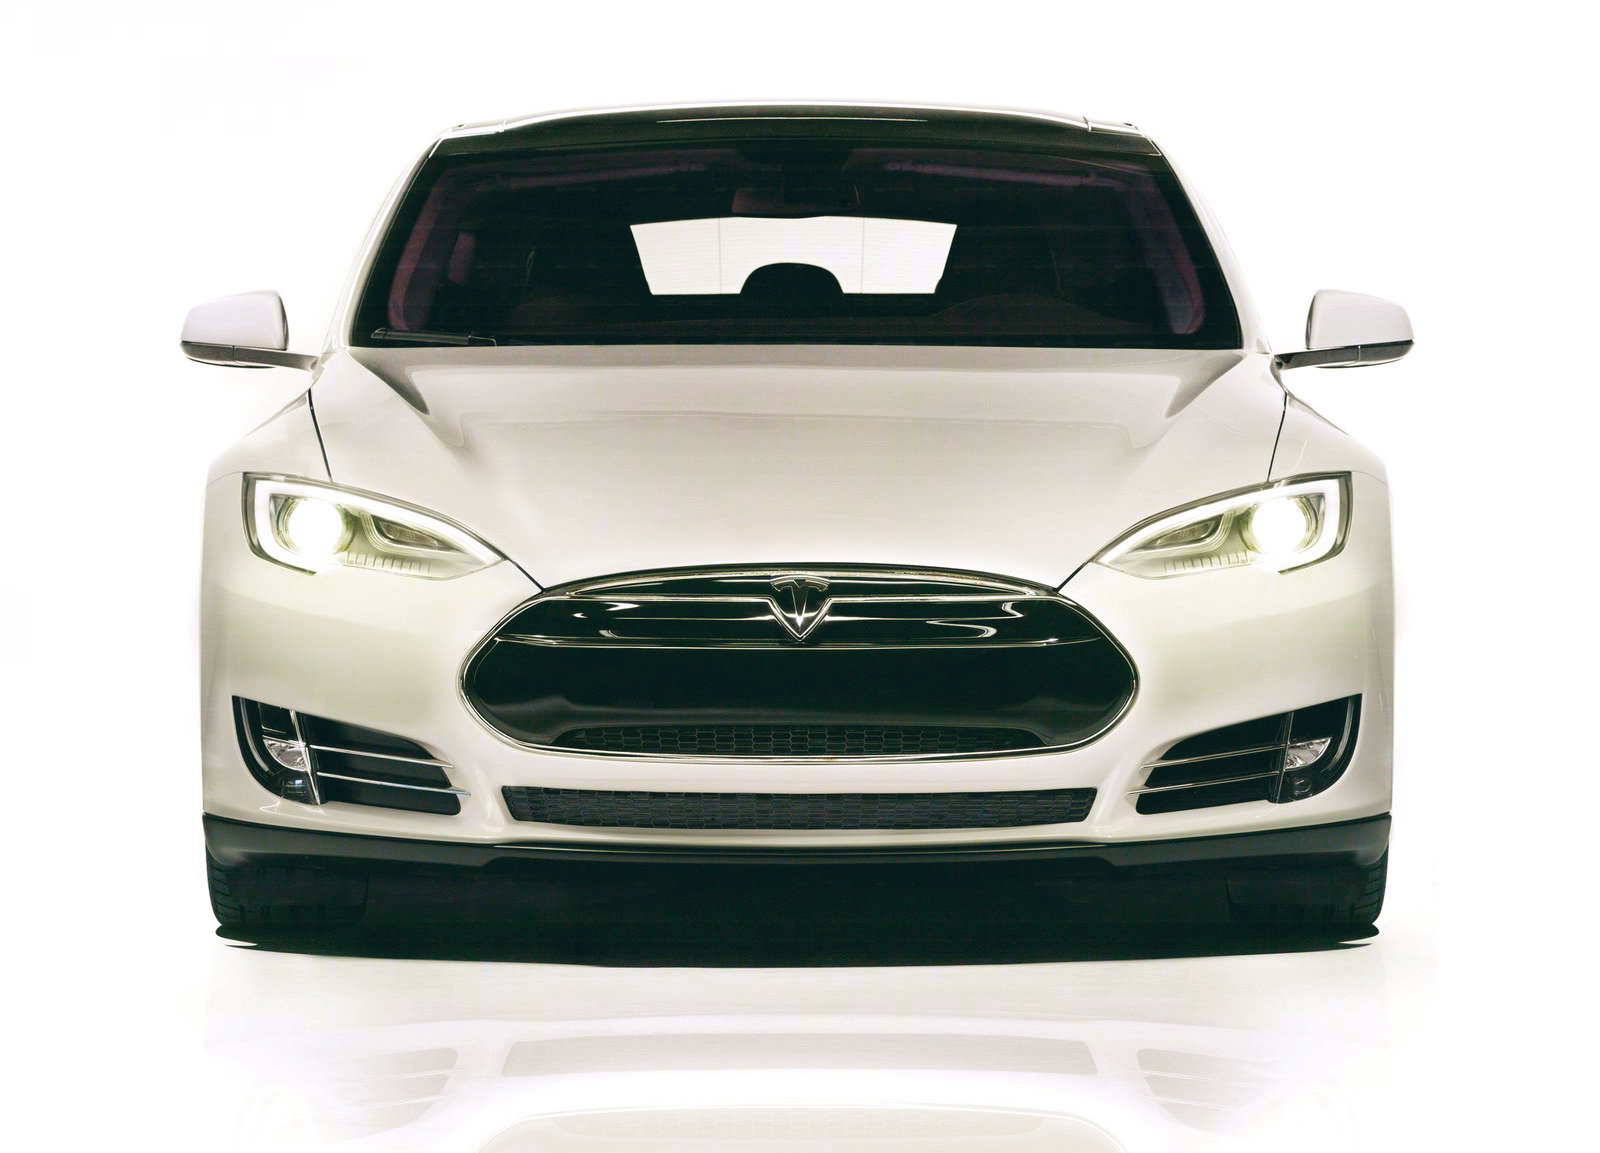 tesla model s is socal 39 s aaa top green vehicle of 2014 autoevolution. Black Bedroom Furniture Sets. Home Design Ideas